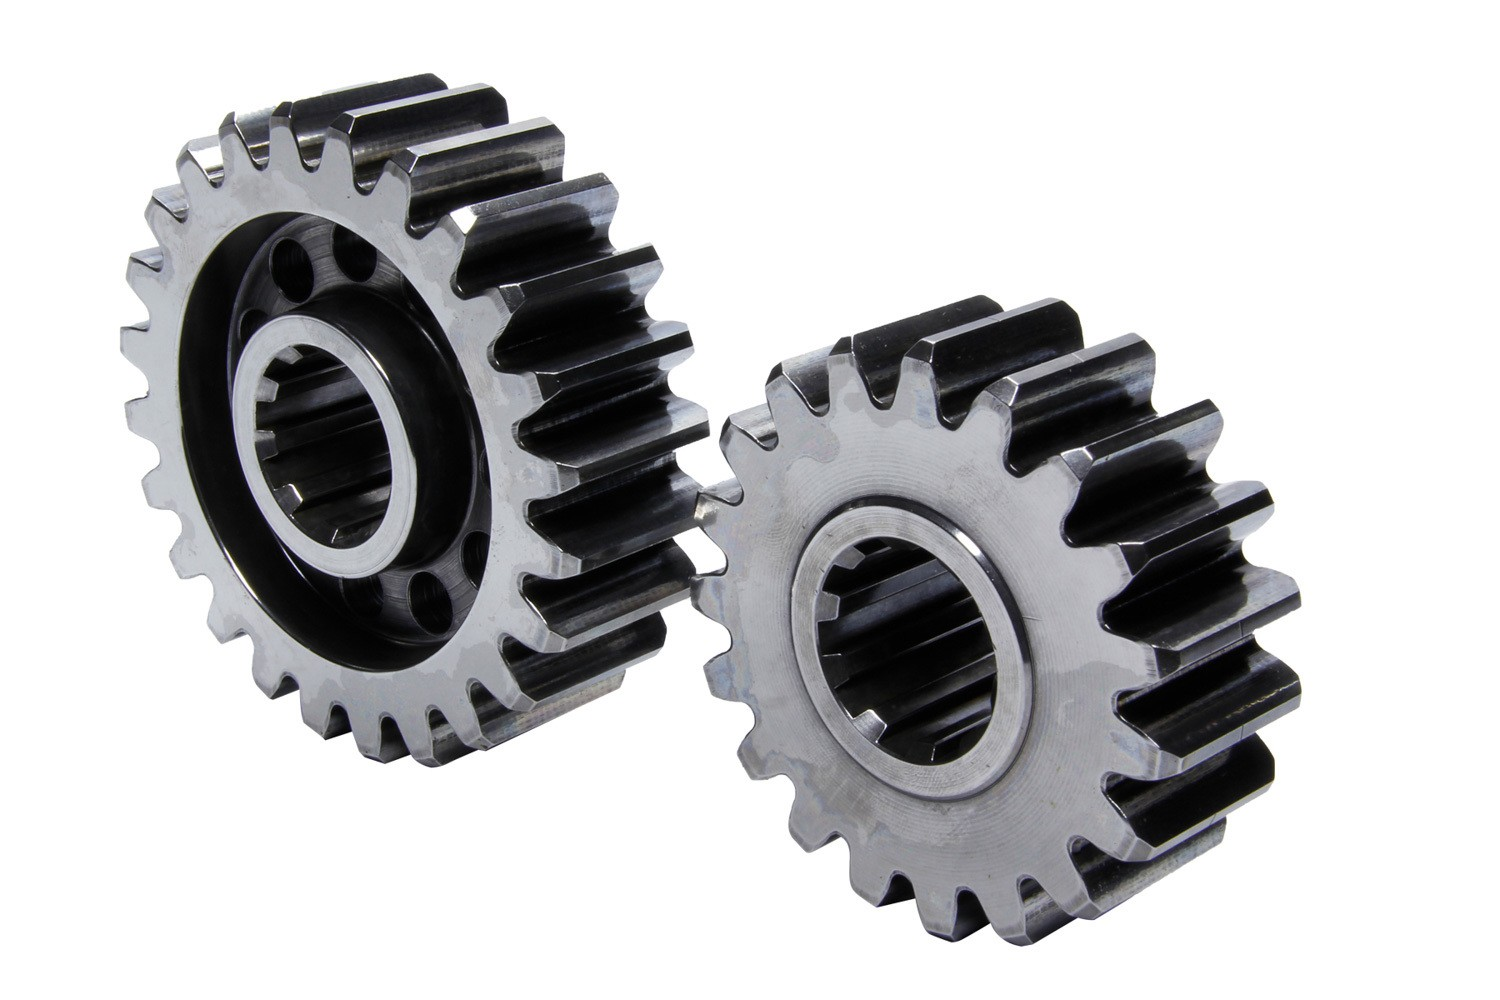 PEM 65018 Quick Change Gear Set, Premium, Set 18, 10 Spline, 4.11 Ratio 5.19 / 3.25, 4.86 Ratio 6.13 / 3.85, Steel, Each